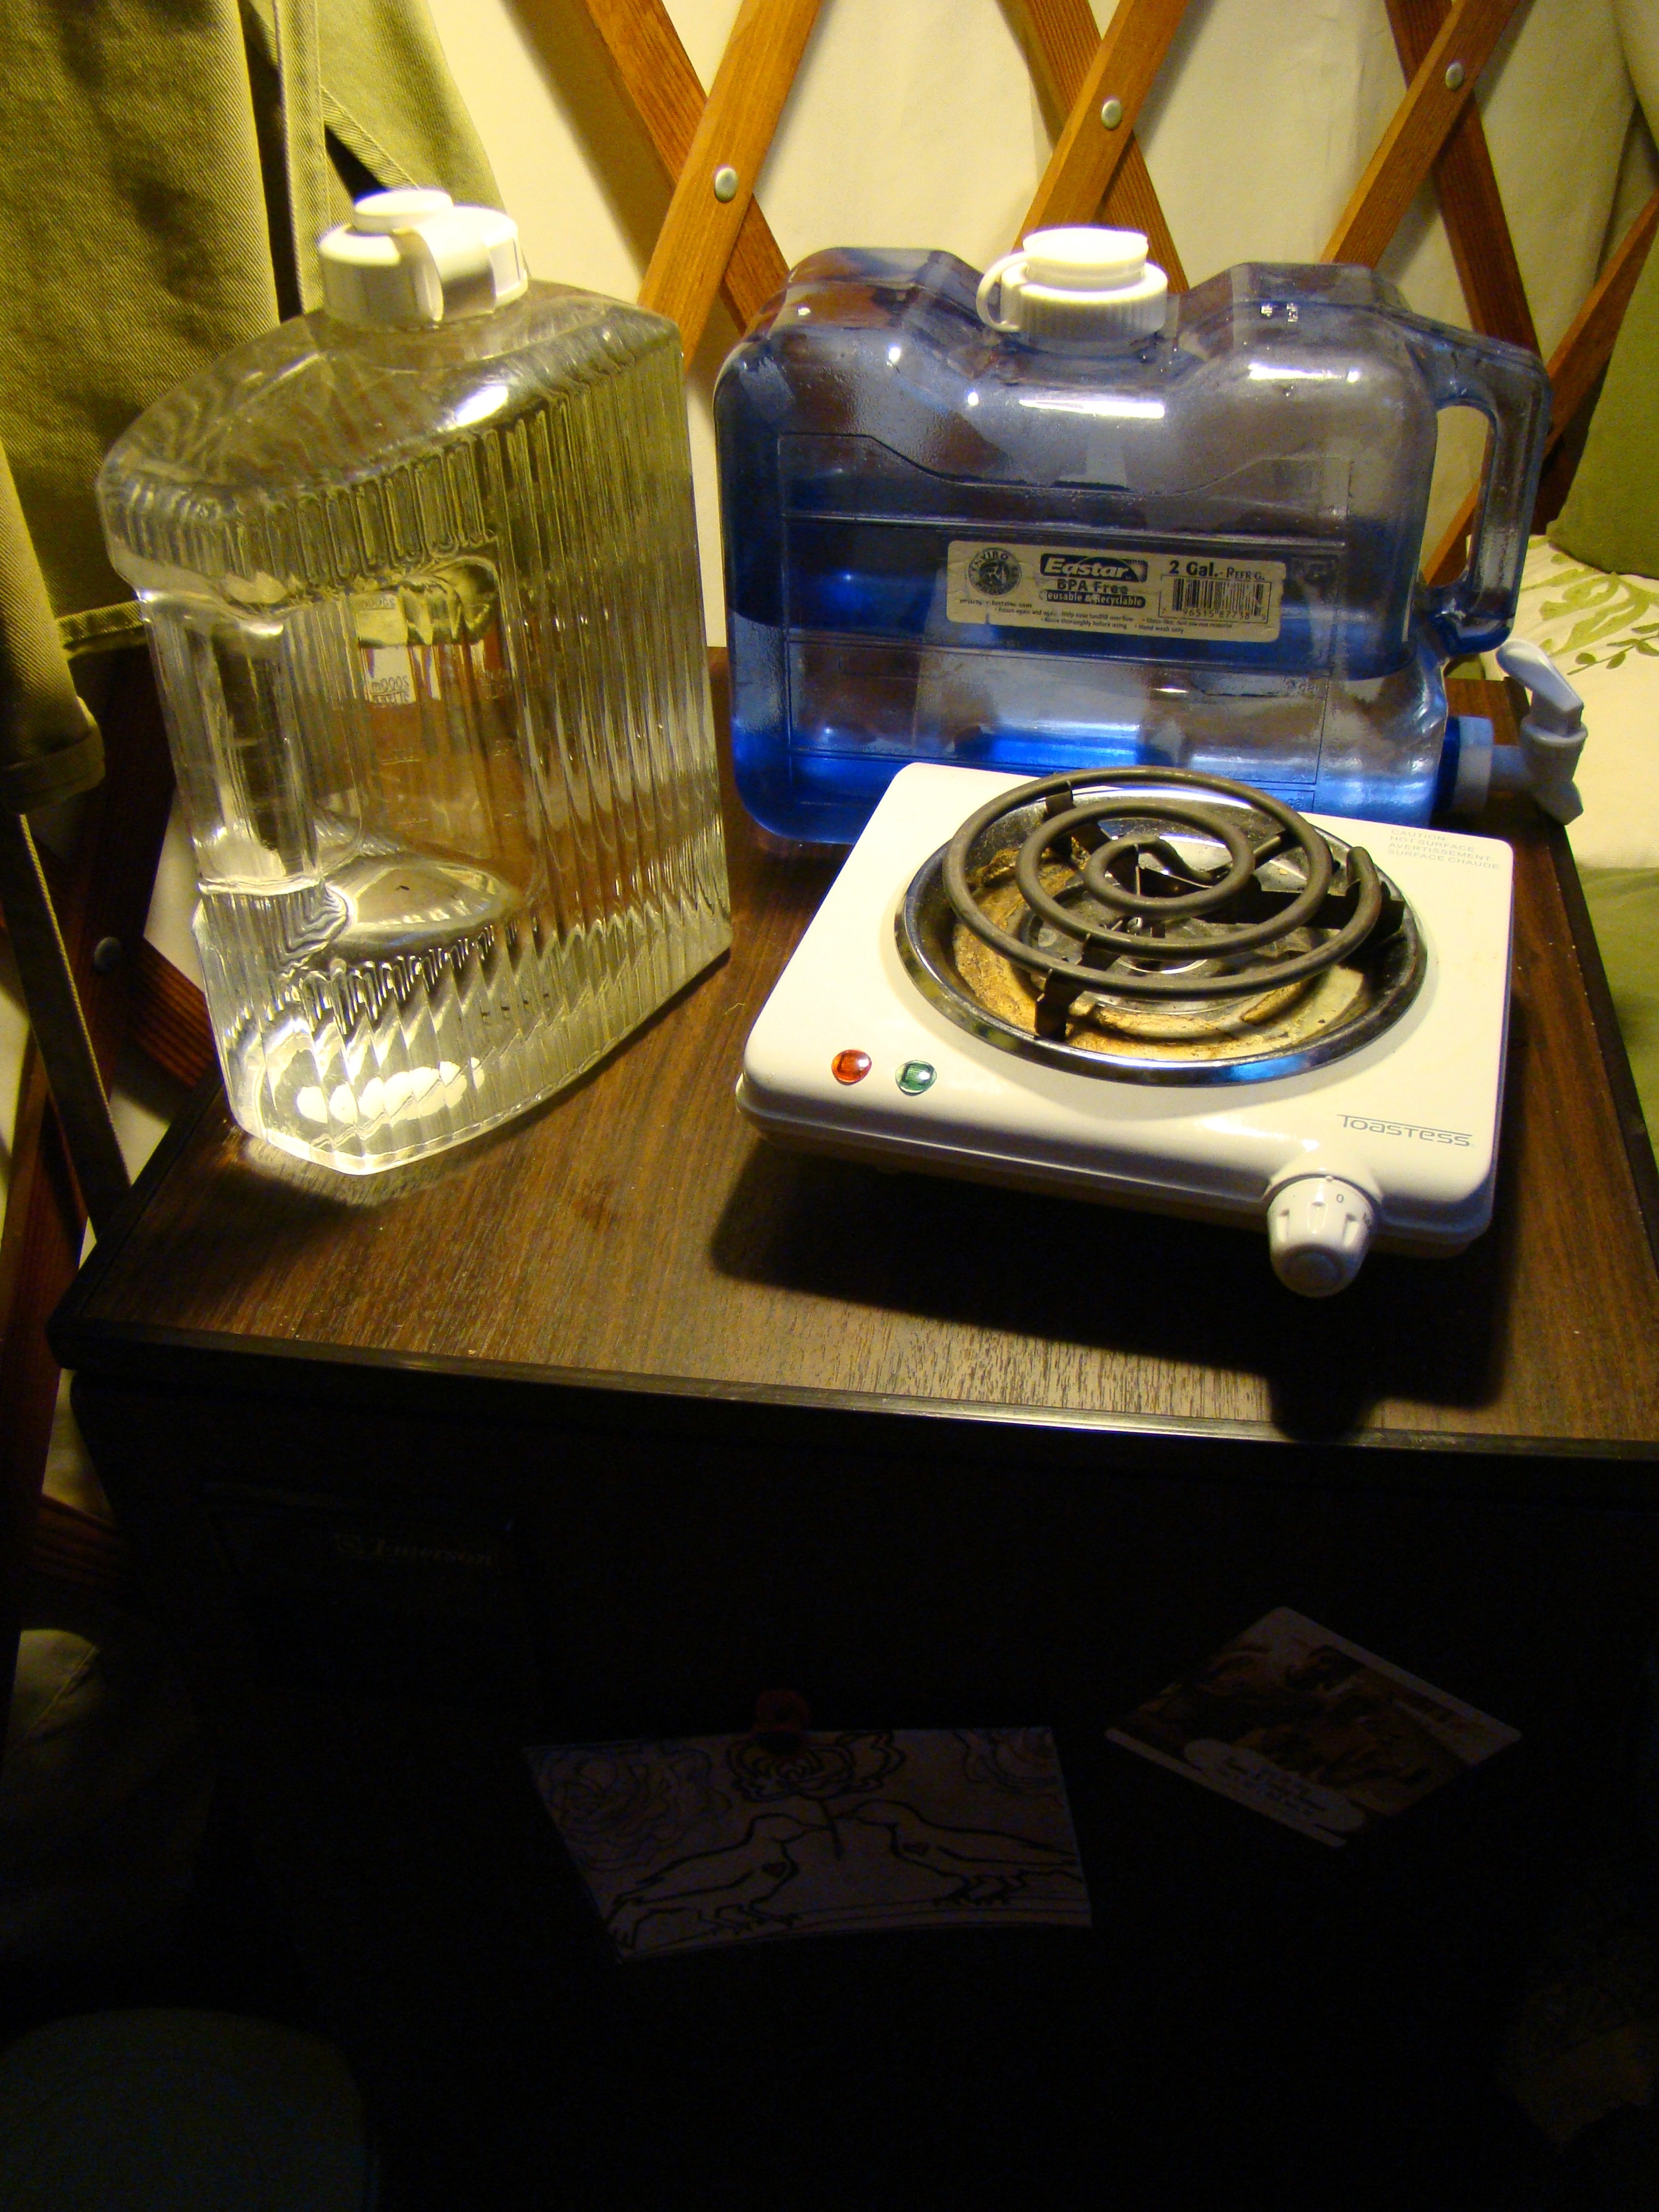 2 water jugs, a 1-burner cooktop, a mini-fridge